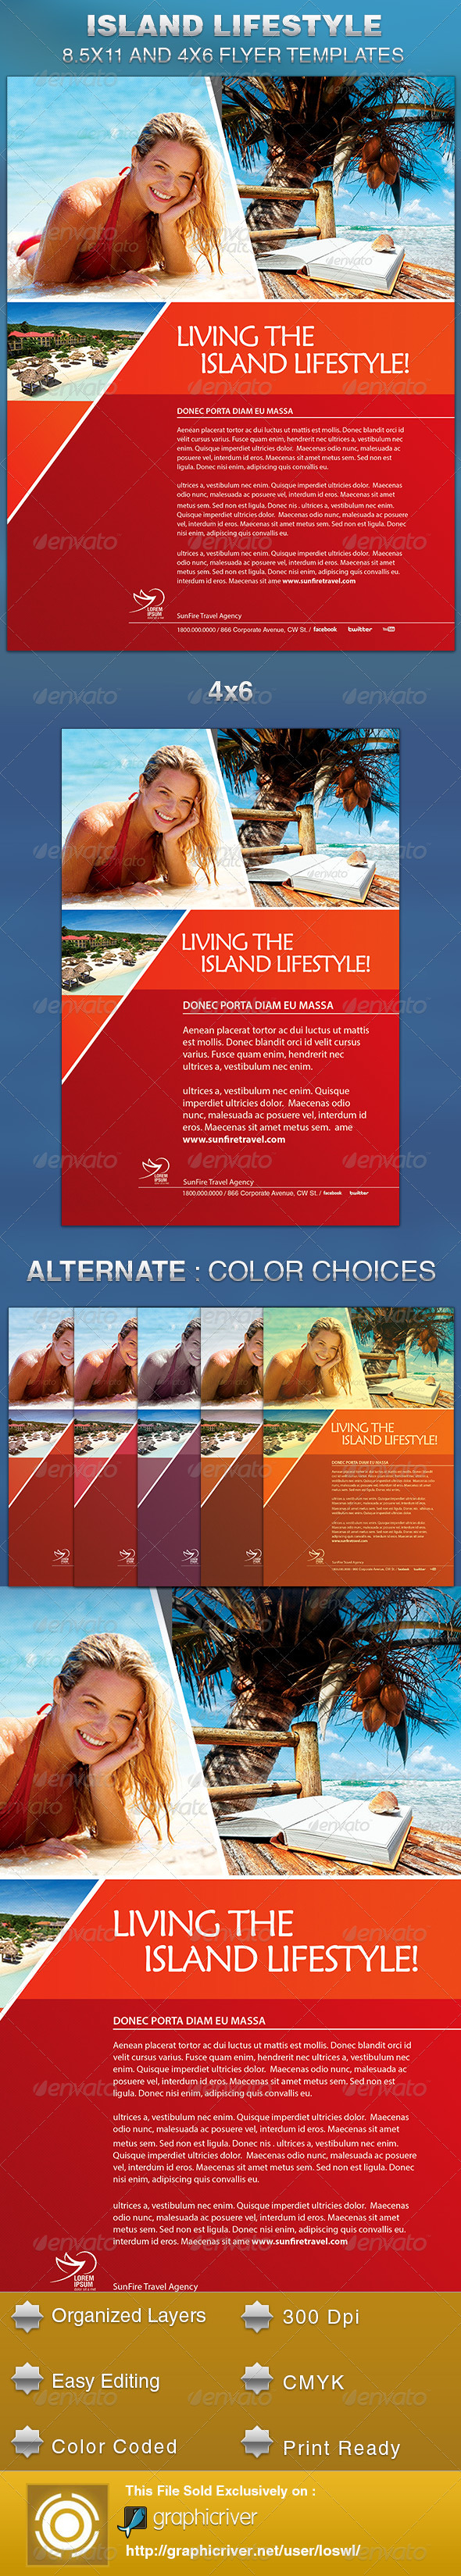 Island Lifestyle Vacation Flyer Template by loswl | GraphicRiver